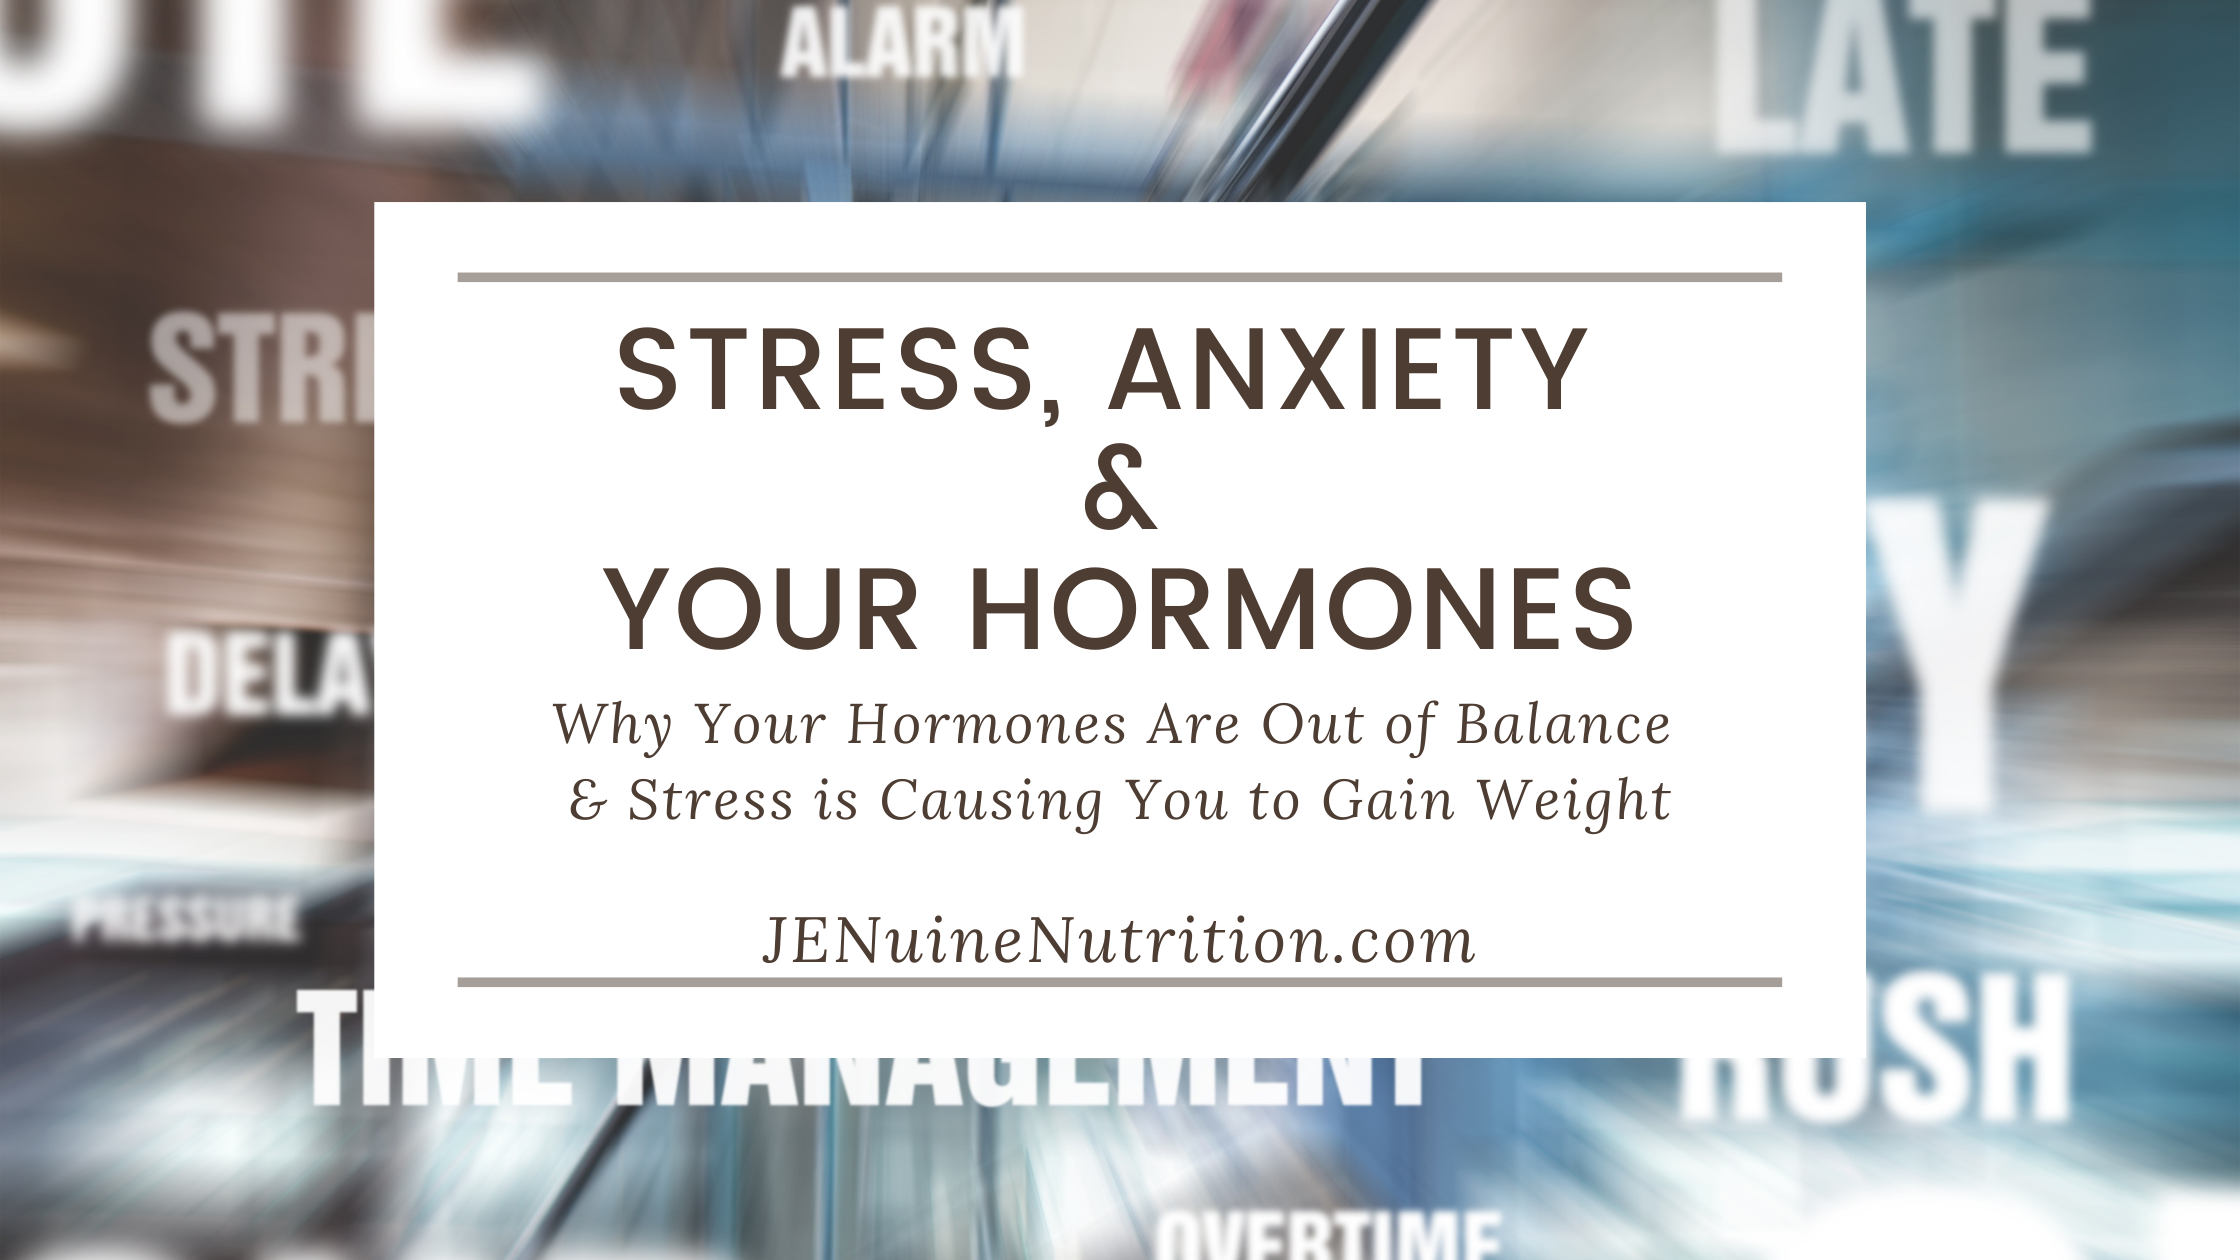 Stress, Anxiety & Your Hormones